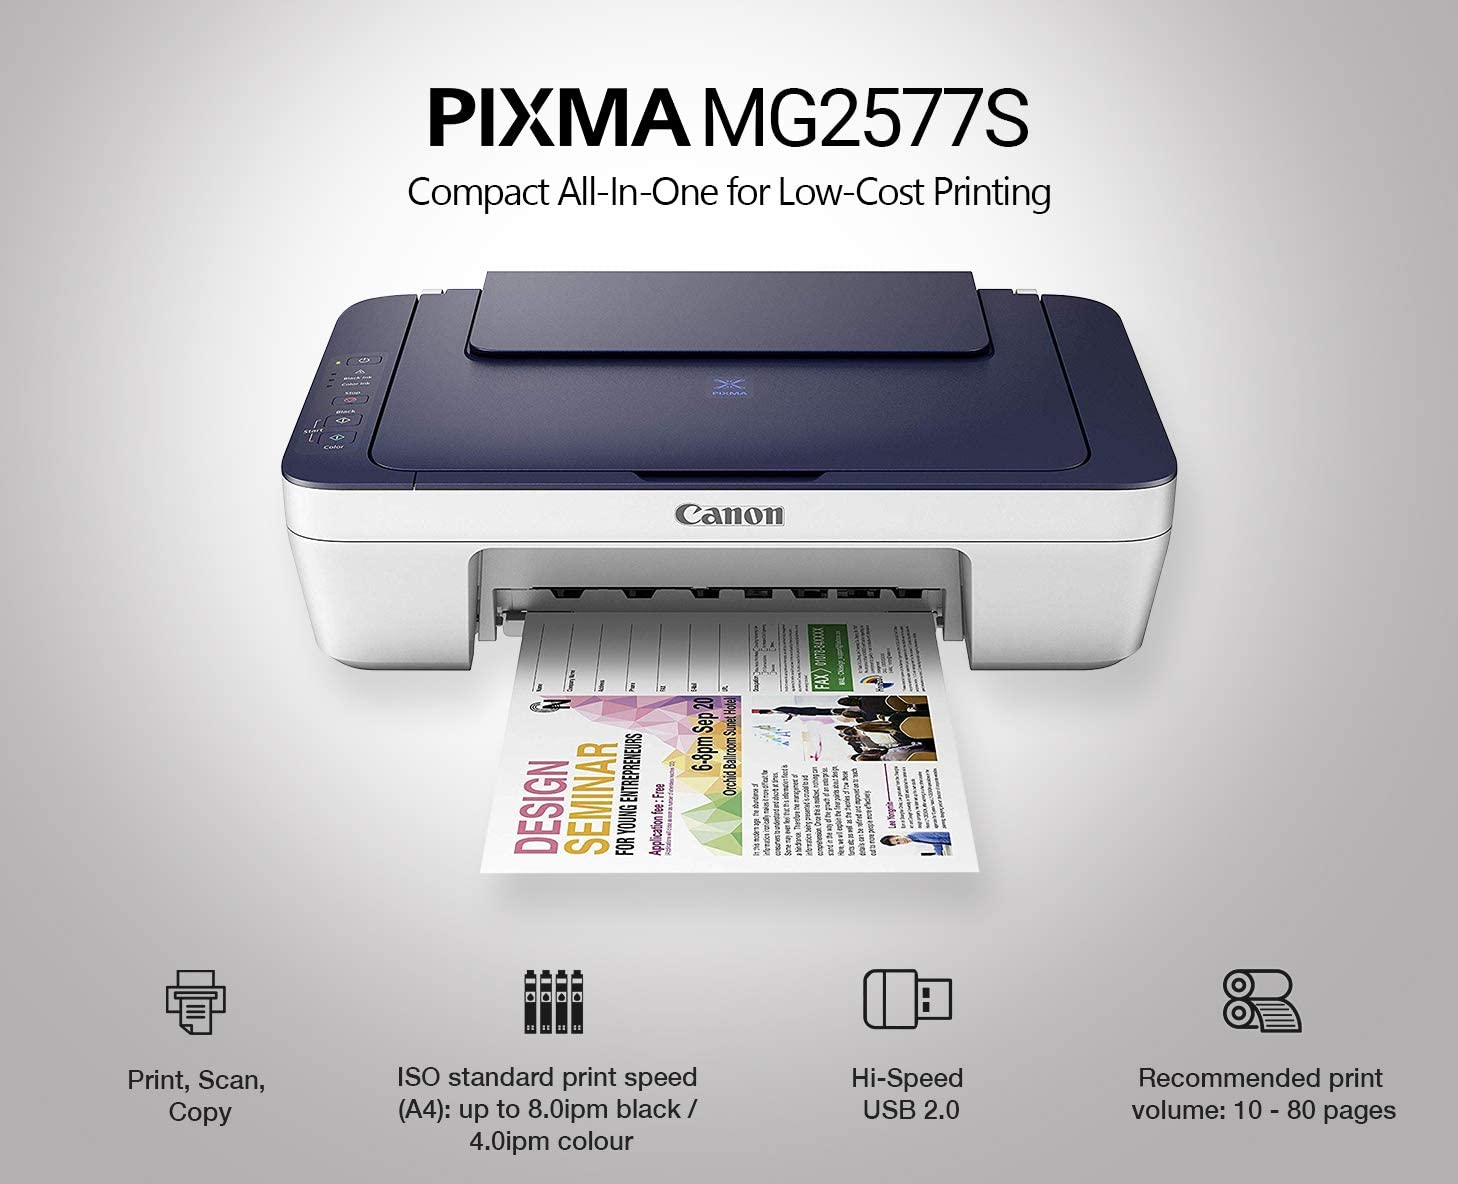 Canon Pixma MG2577s All-in-One InkJet Printer (Blue/White) at Rs 1999